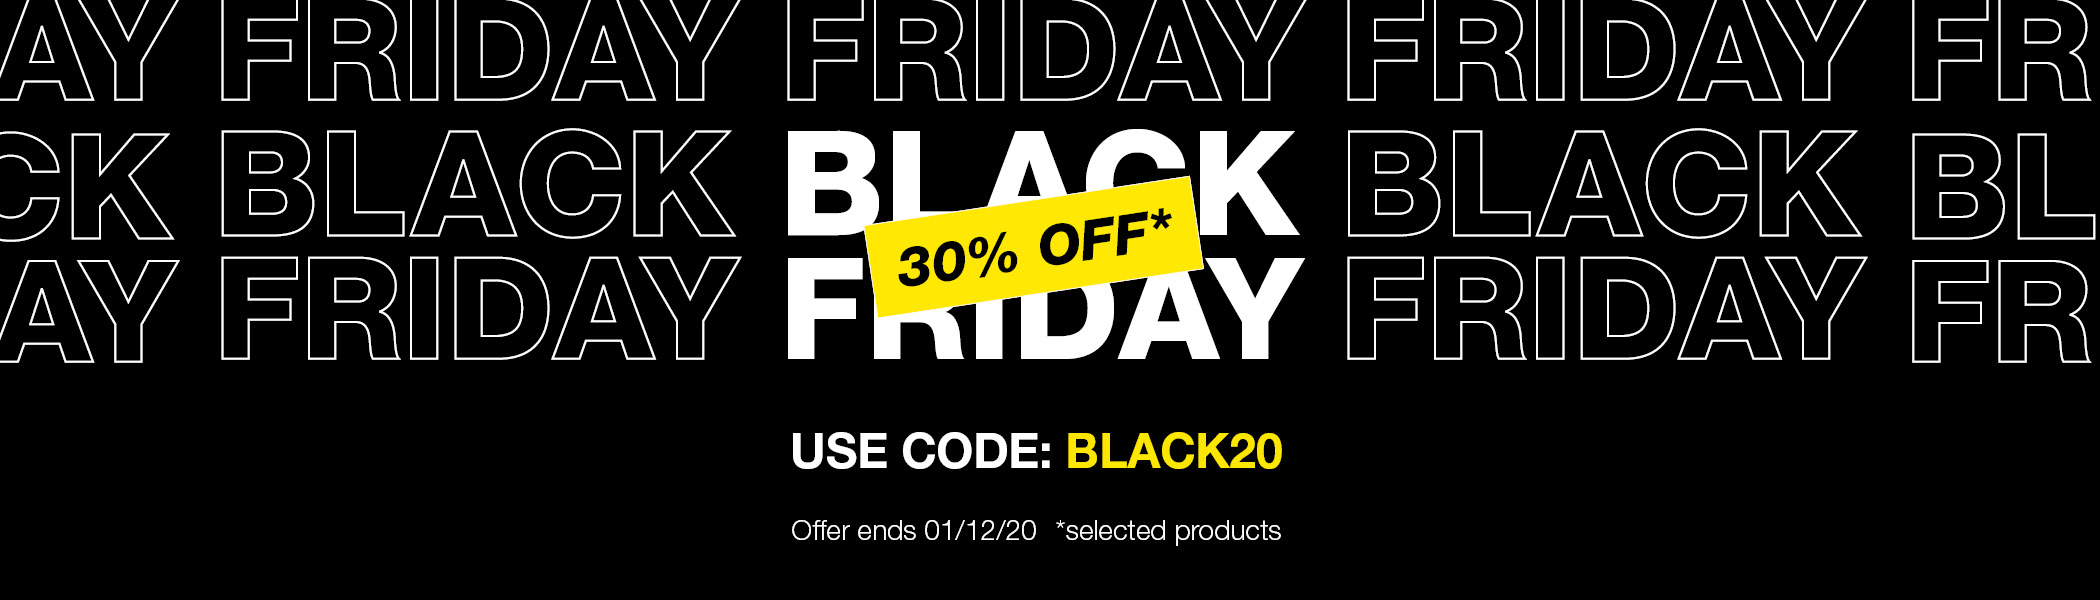 Black Friday products featured in offer...